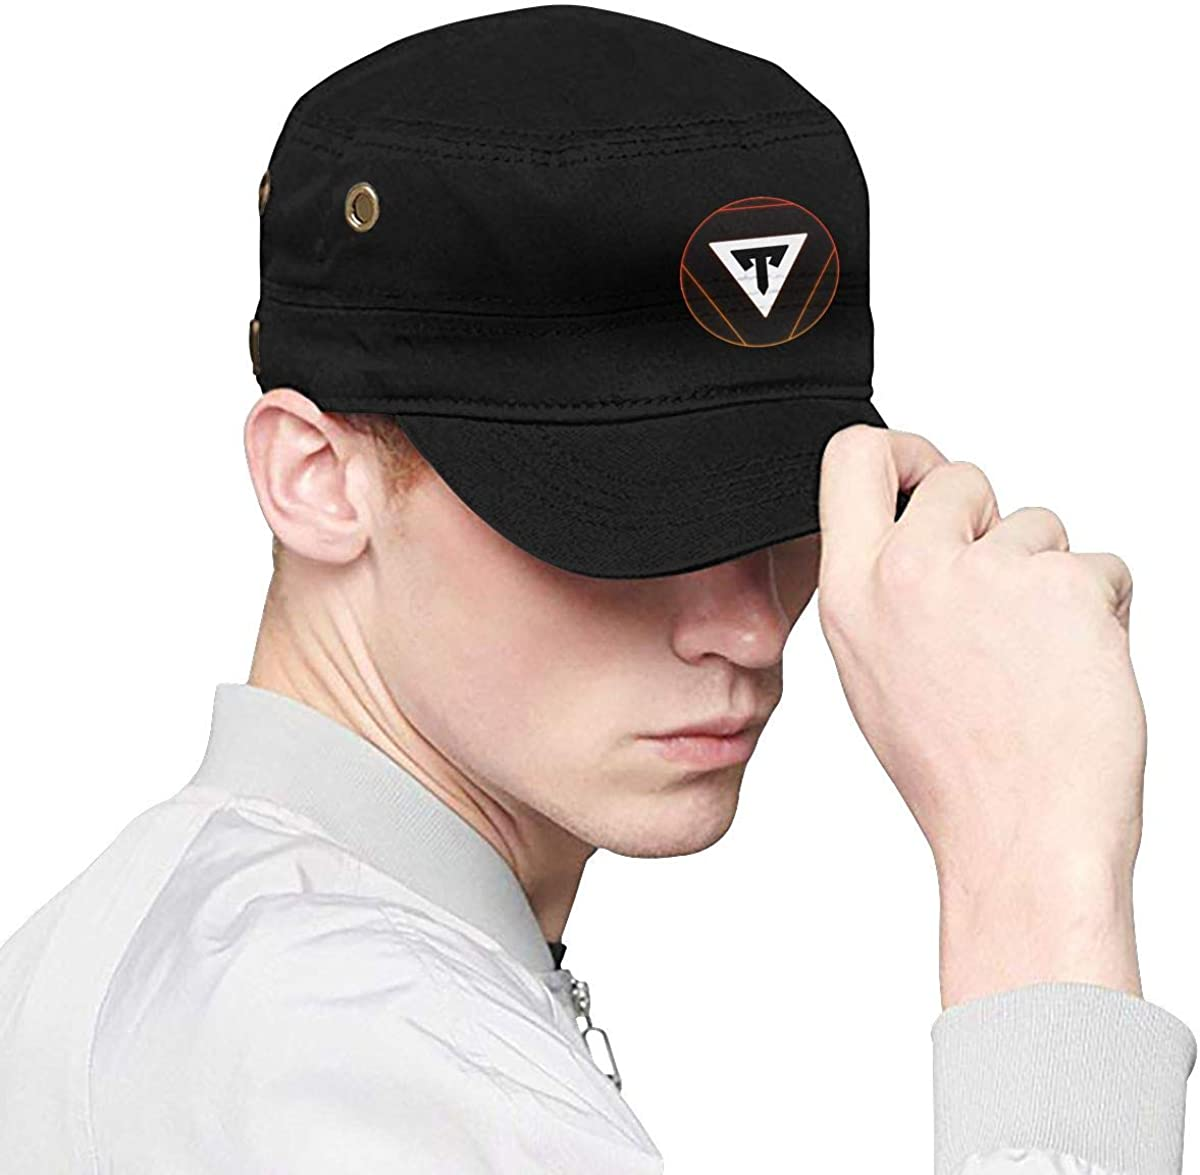 J4b756J Adult Flat Cap Typical-Gamer Adjustable Cotton Hat with Snap Closure